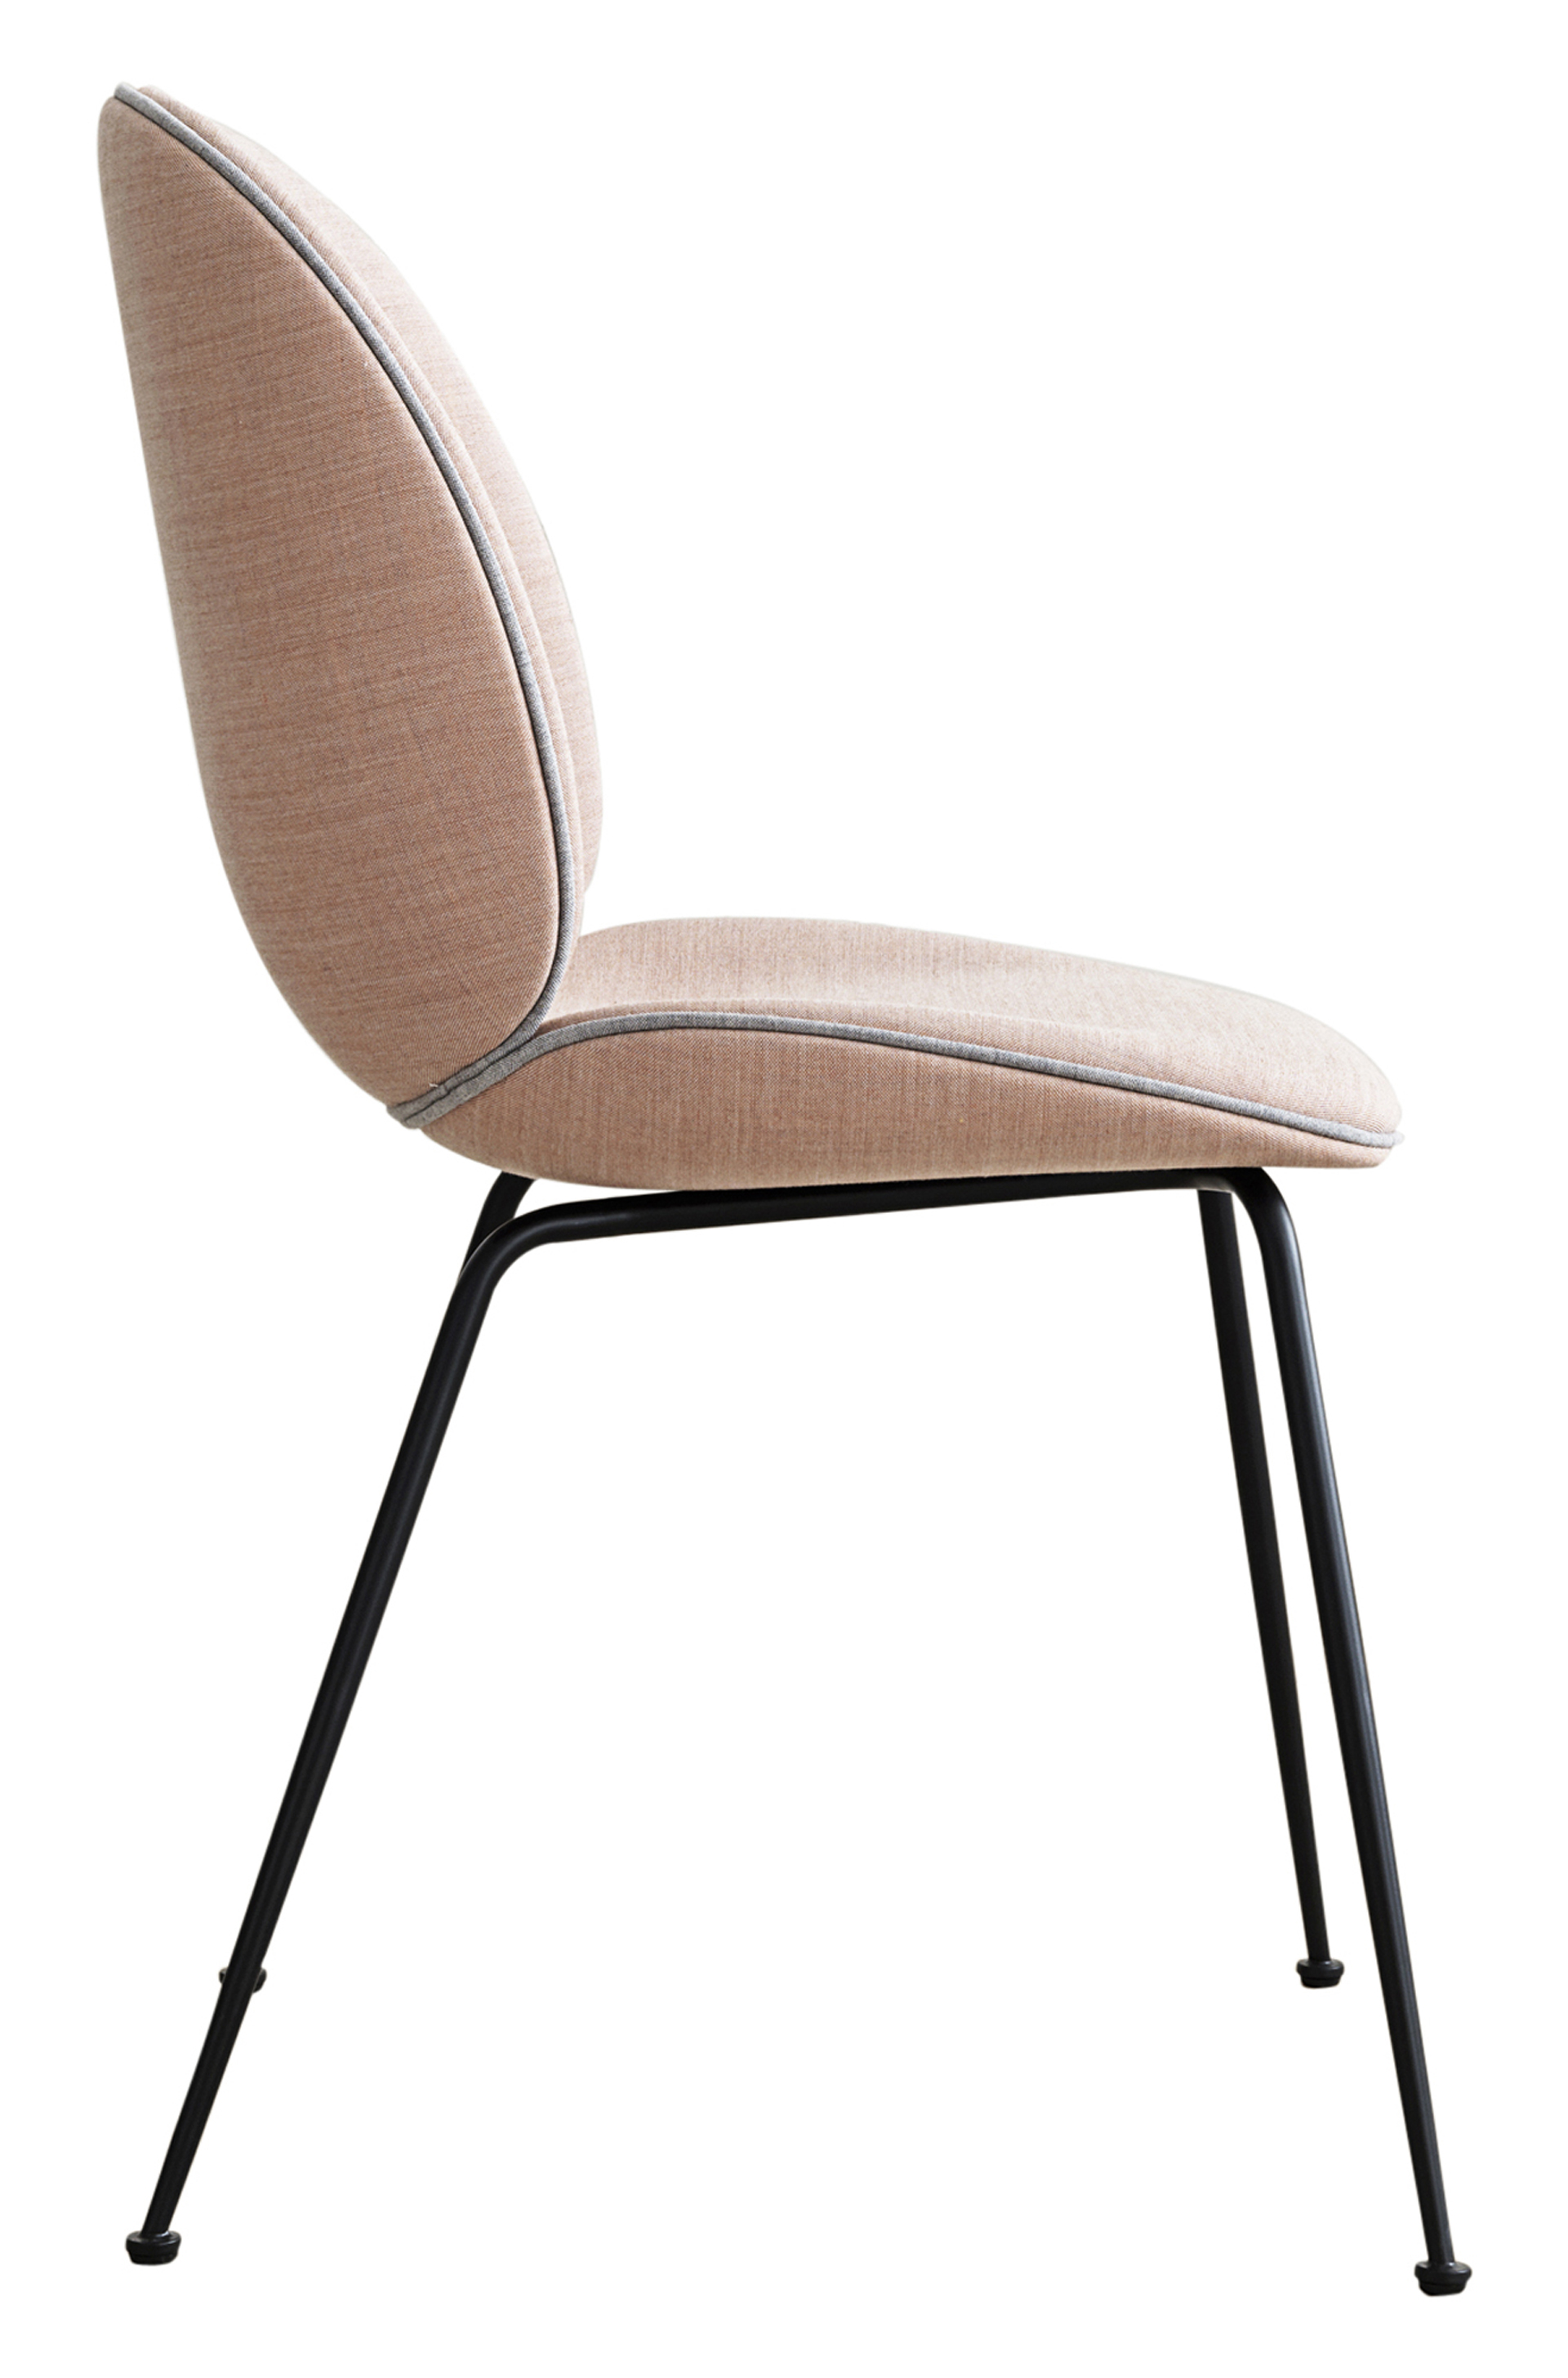 BEETLE DINING CHAIR - Contemporary Mid-Century Modern Dining Chairs